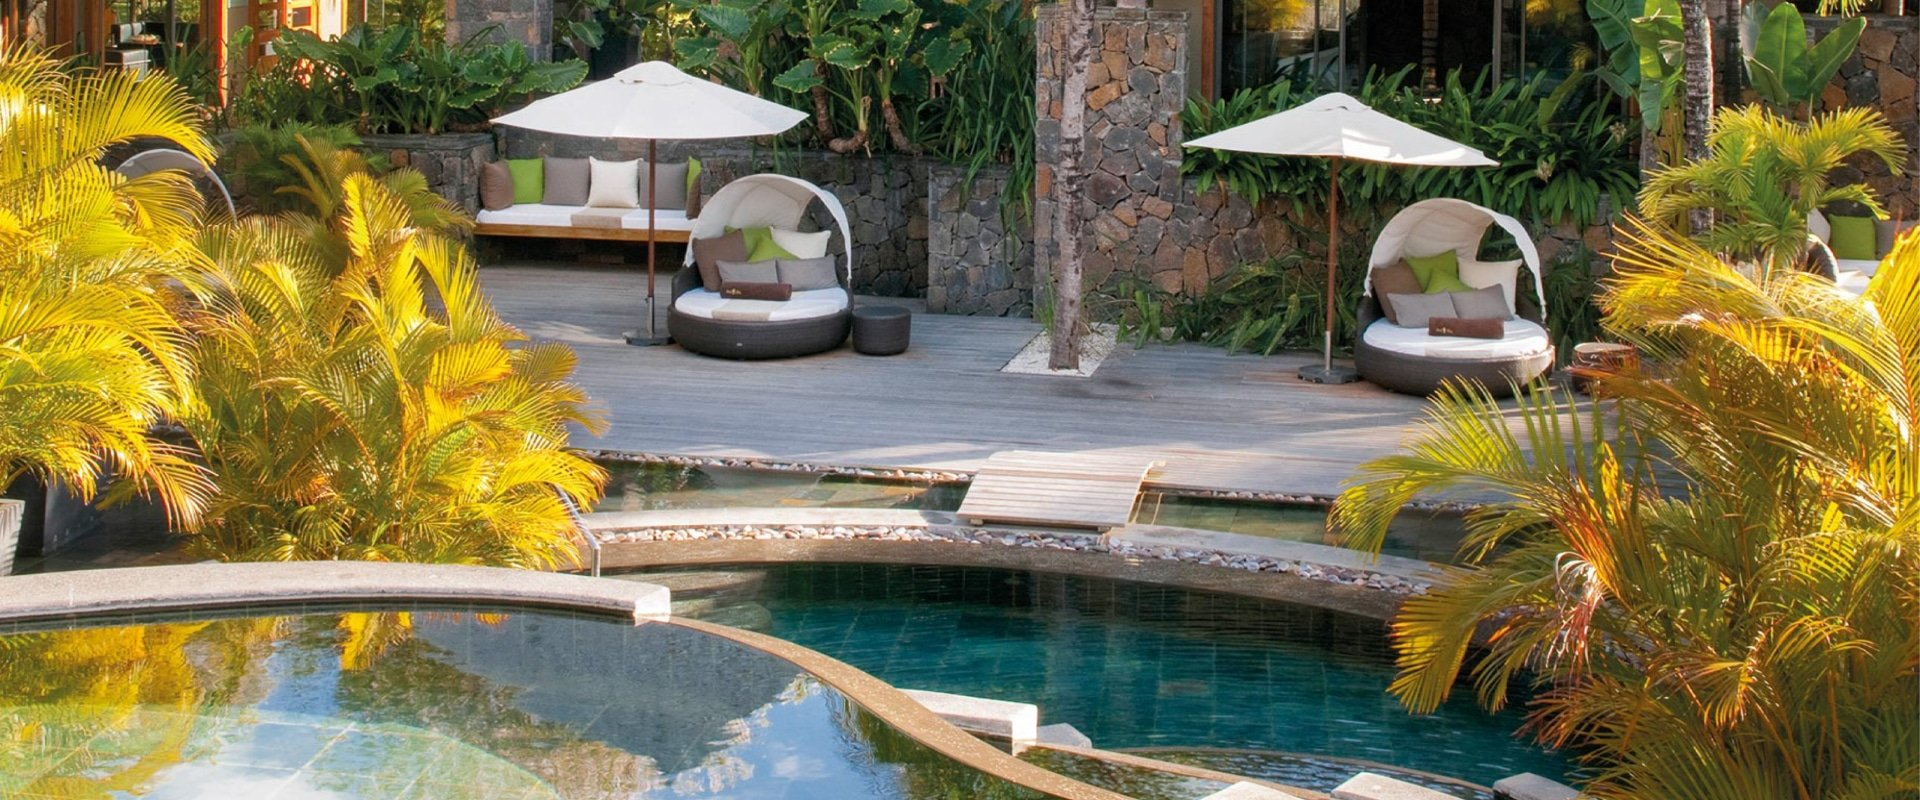 Experience a world of pampering at this world-class spa